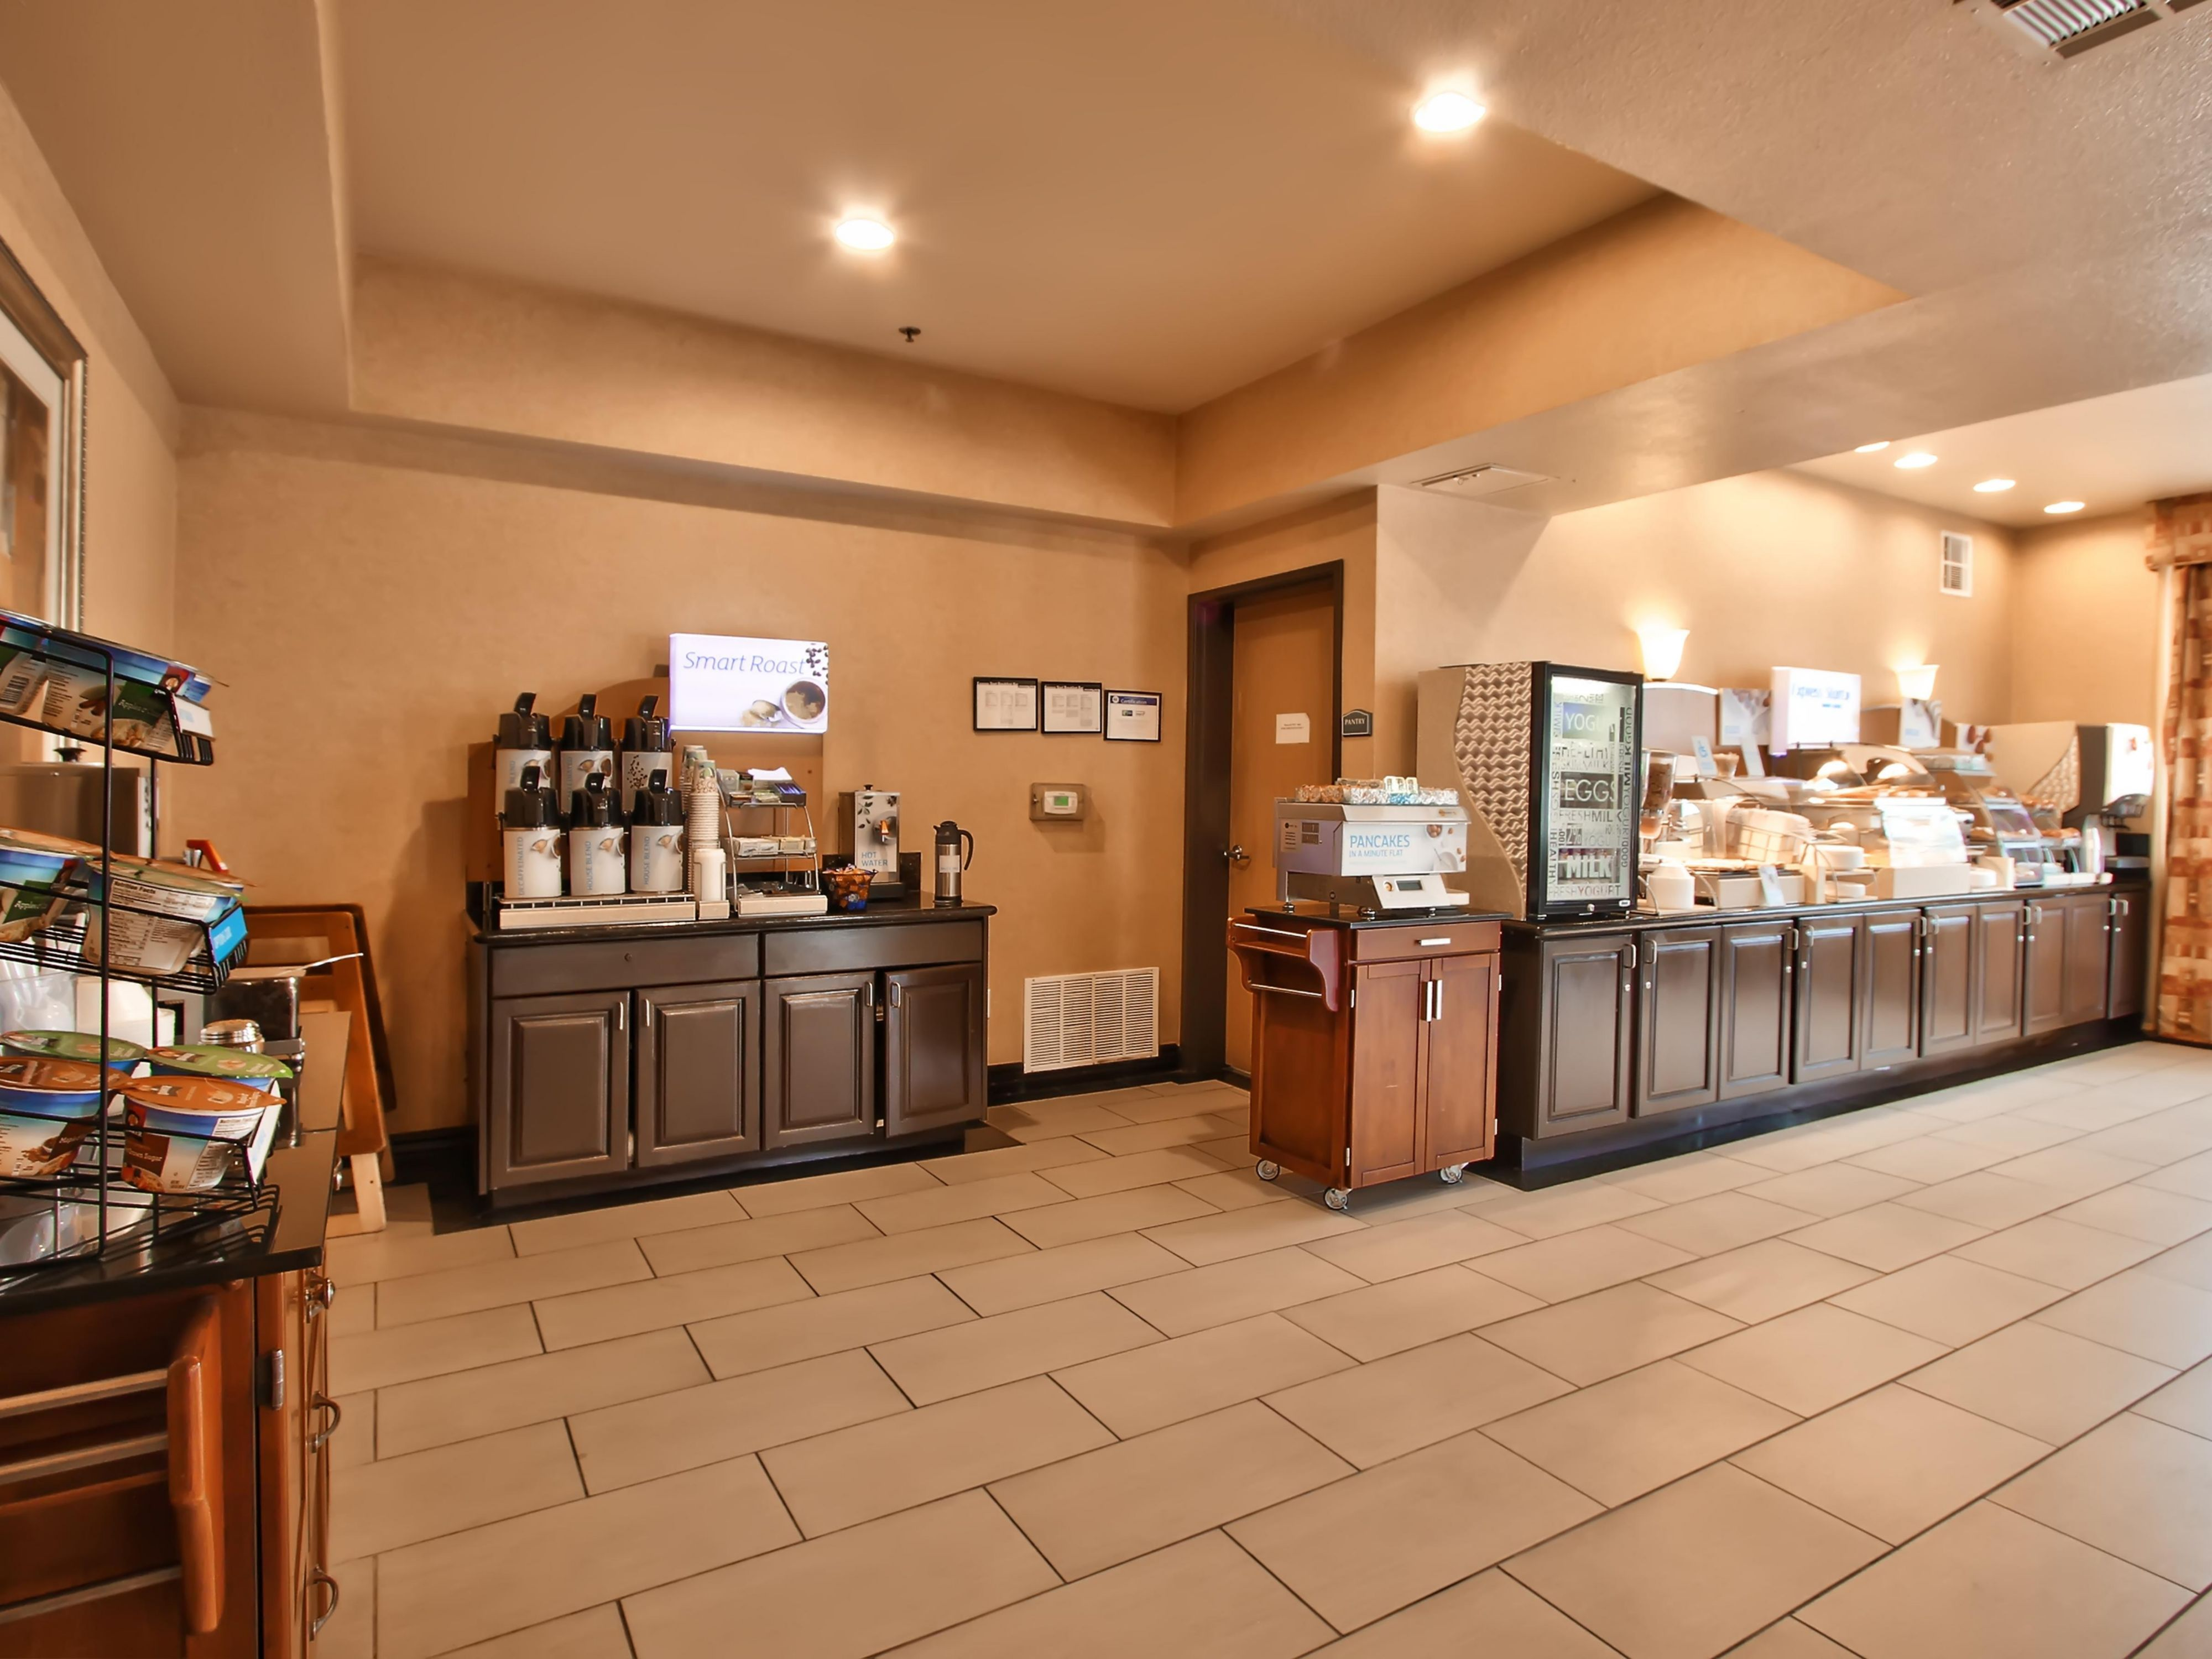 Oatmeal Station & coffee bar